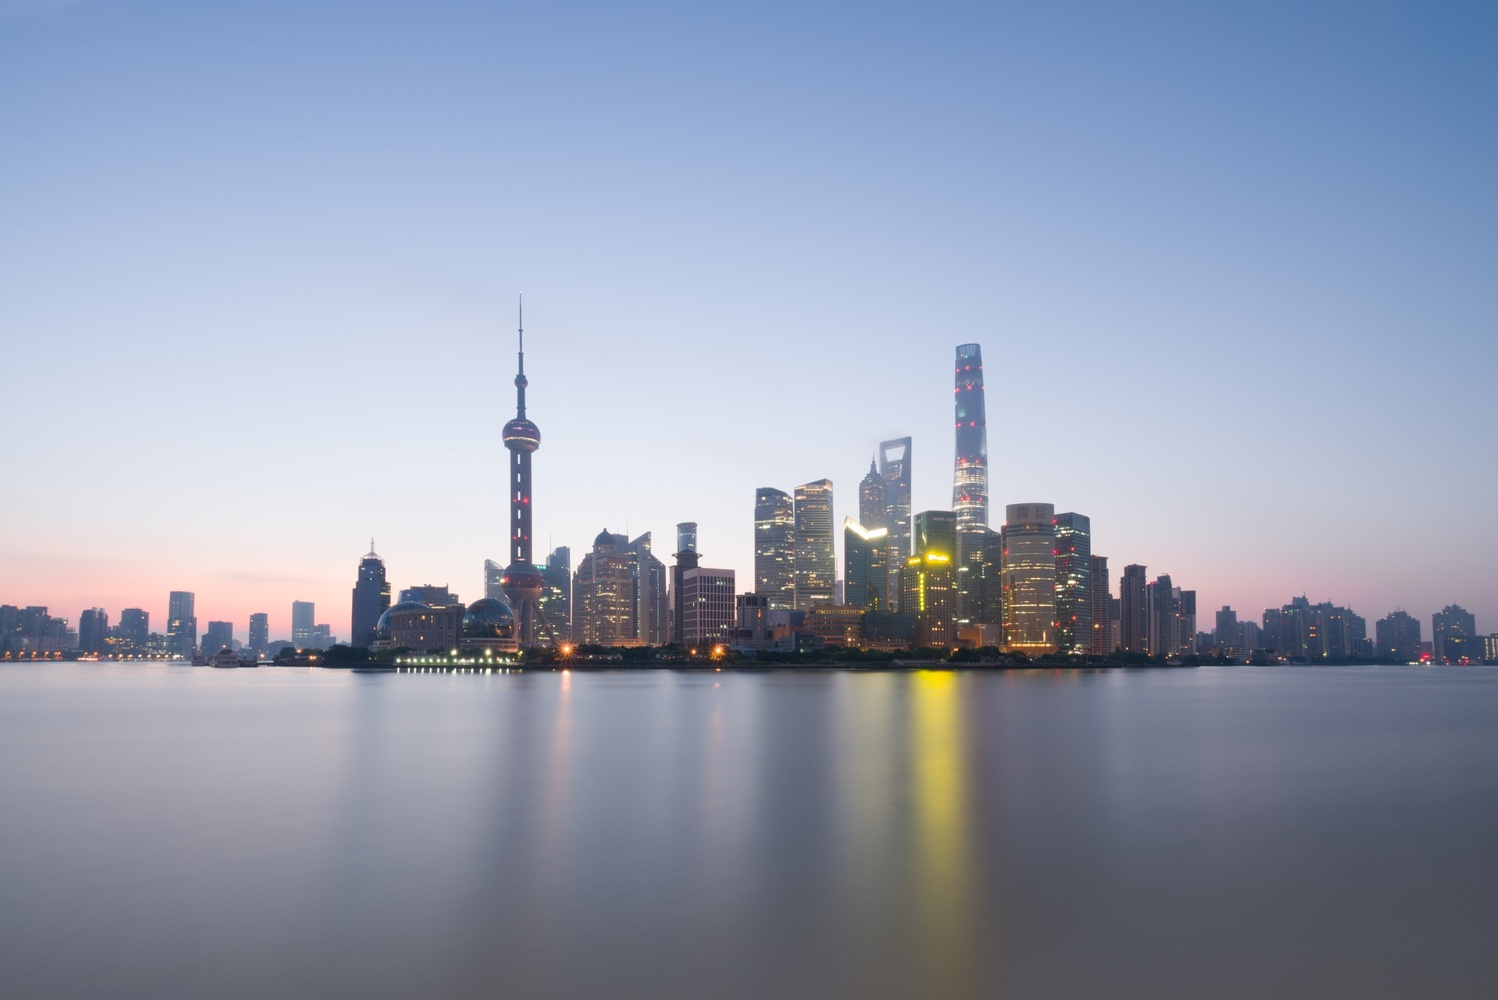 Pudong skyline at sunrise, seen from the Bund 上海 by Léonard Rodriguez